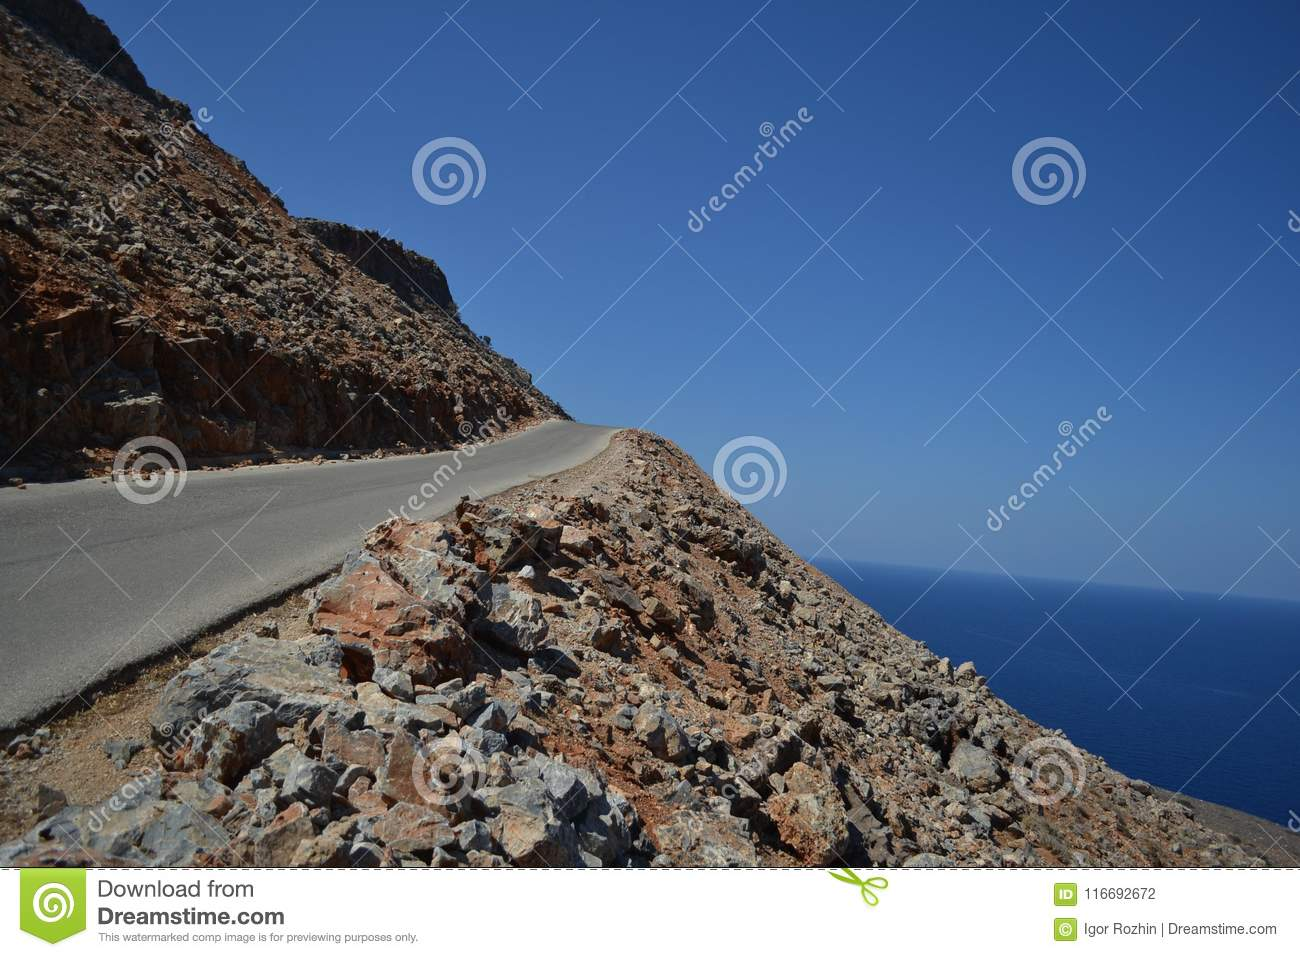 Dangerous Slope And Unreal Beauty Stock Photo - Image of